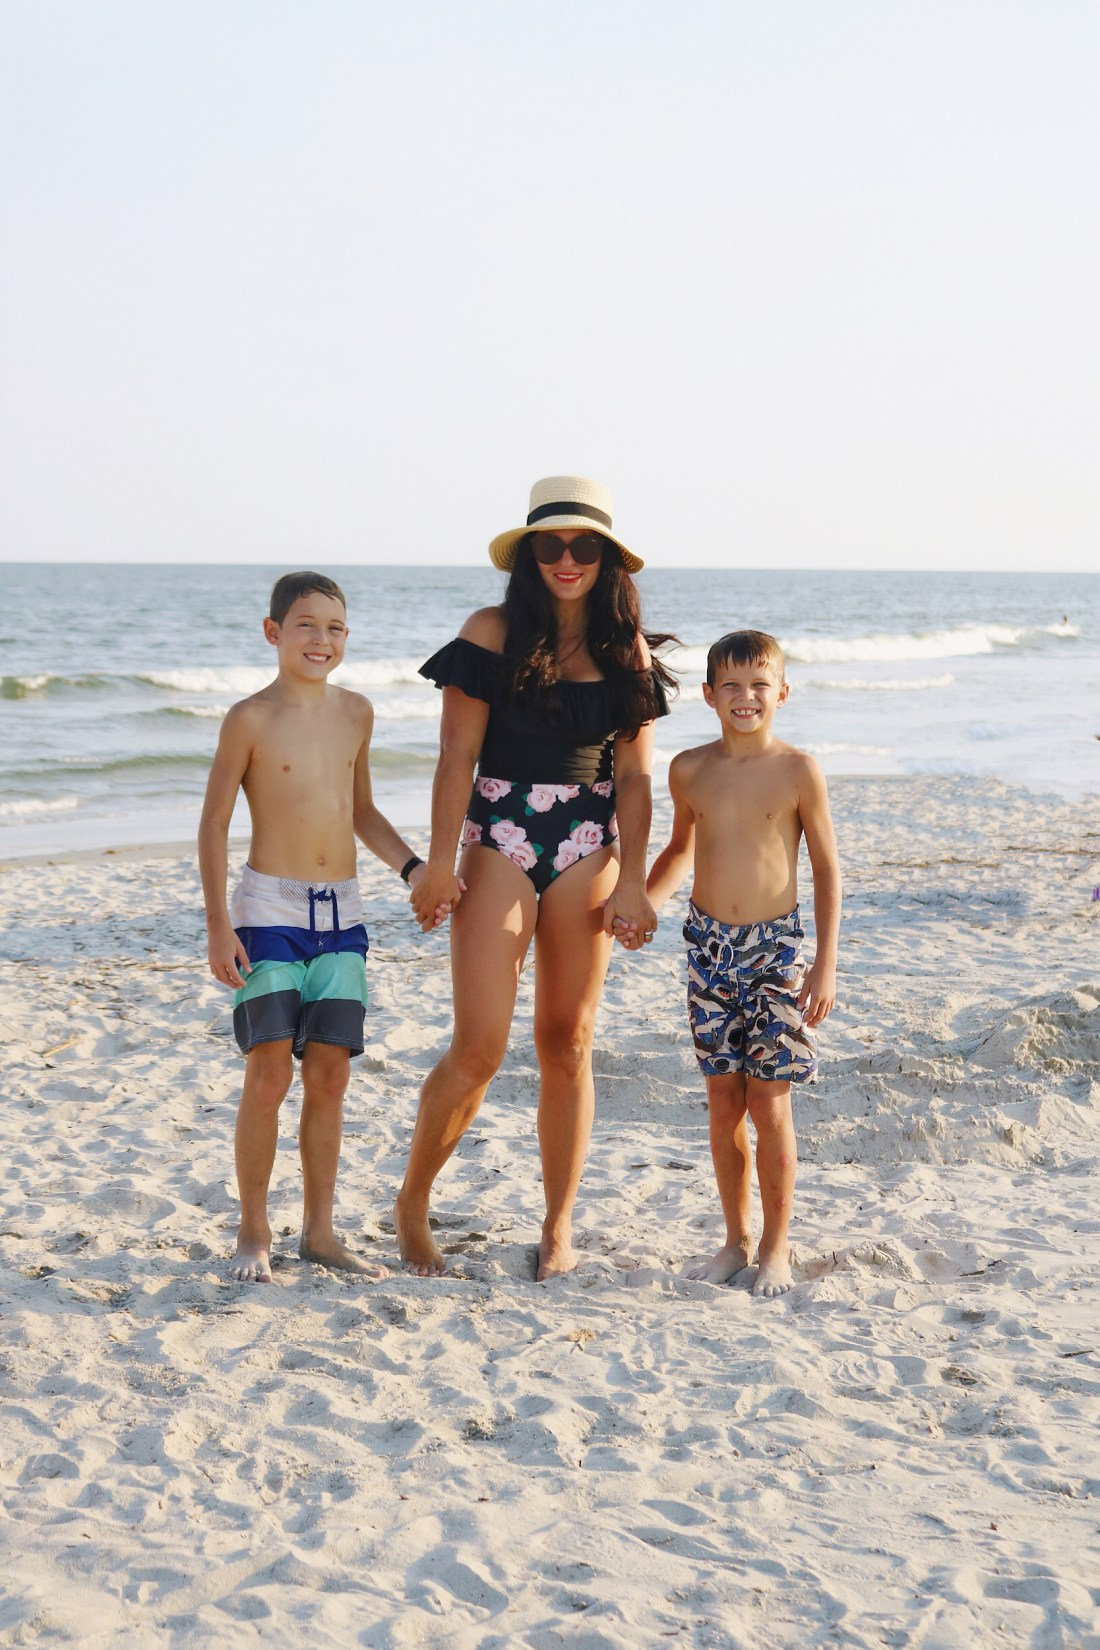 4 one-piece swimsuit styles that are perfect for beach side lounging || Darling Darleen #onepiece #swimsuit #darlingdarleen #darleenmeier